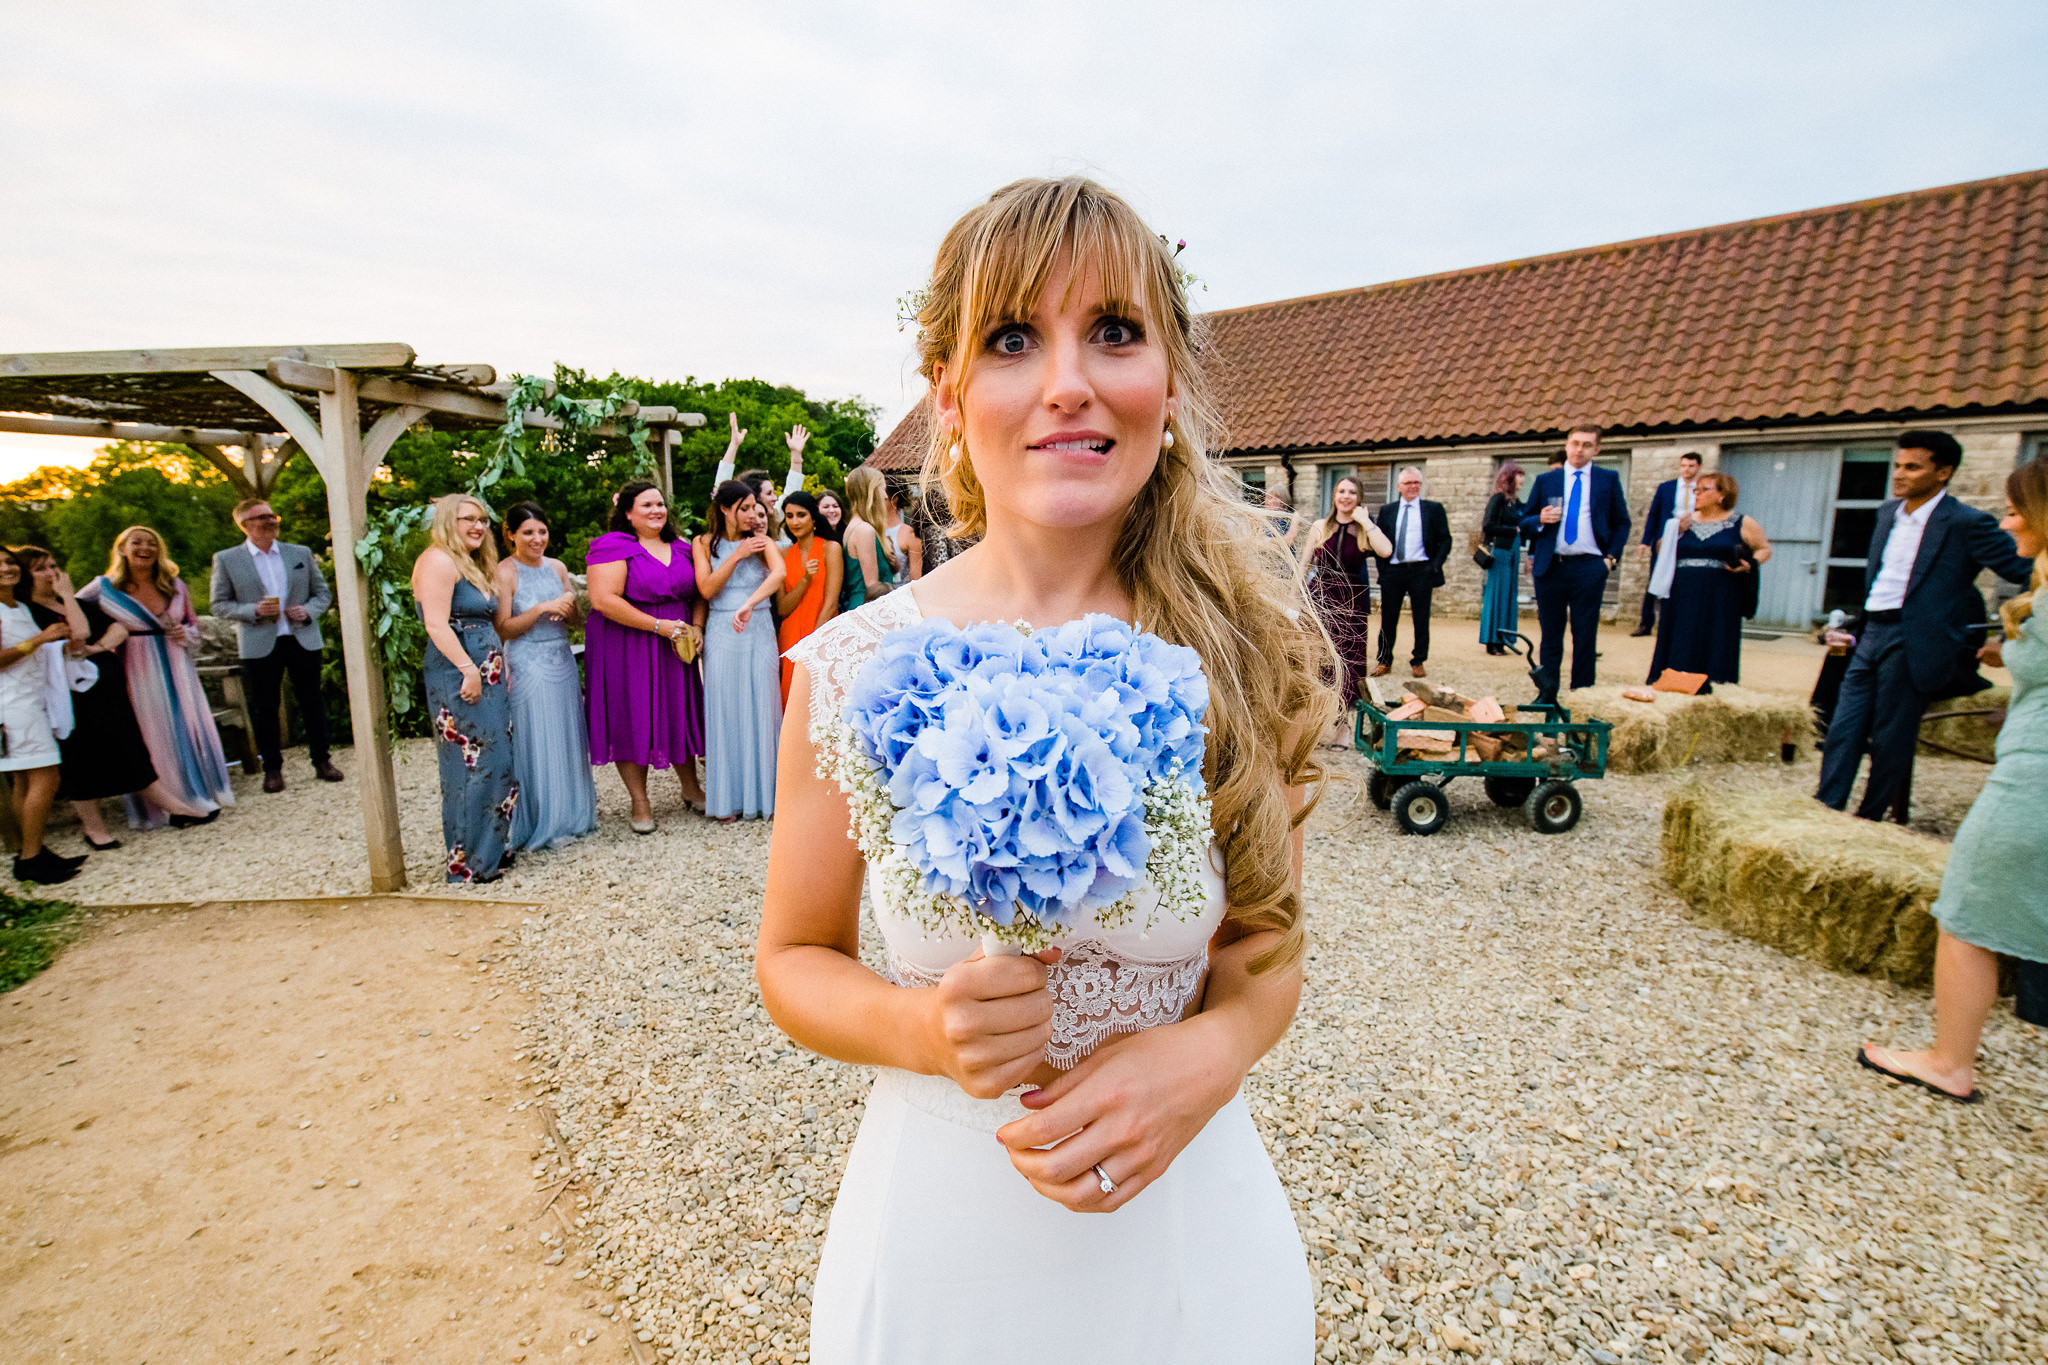 Hesitant bride gets ready to throw her hydrangea bouquet - photo by Rich Howman - UK wedding photographer